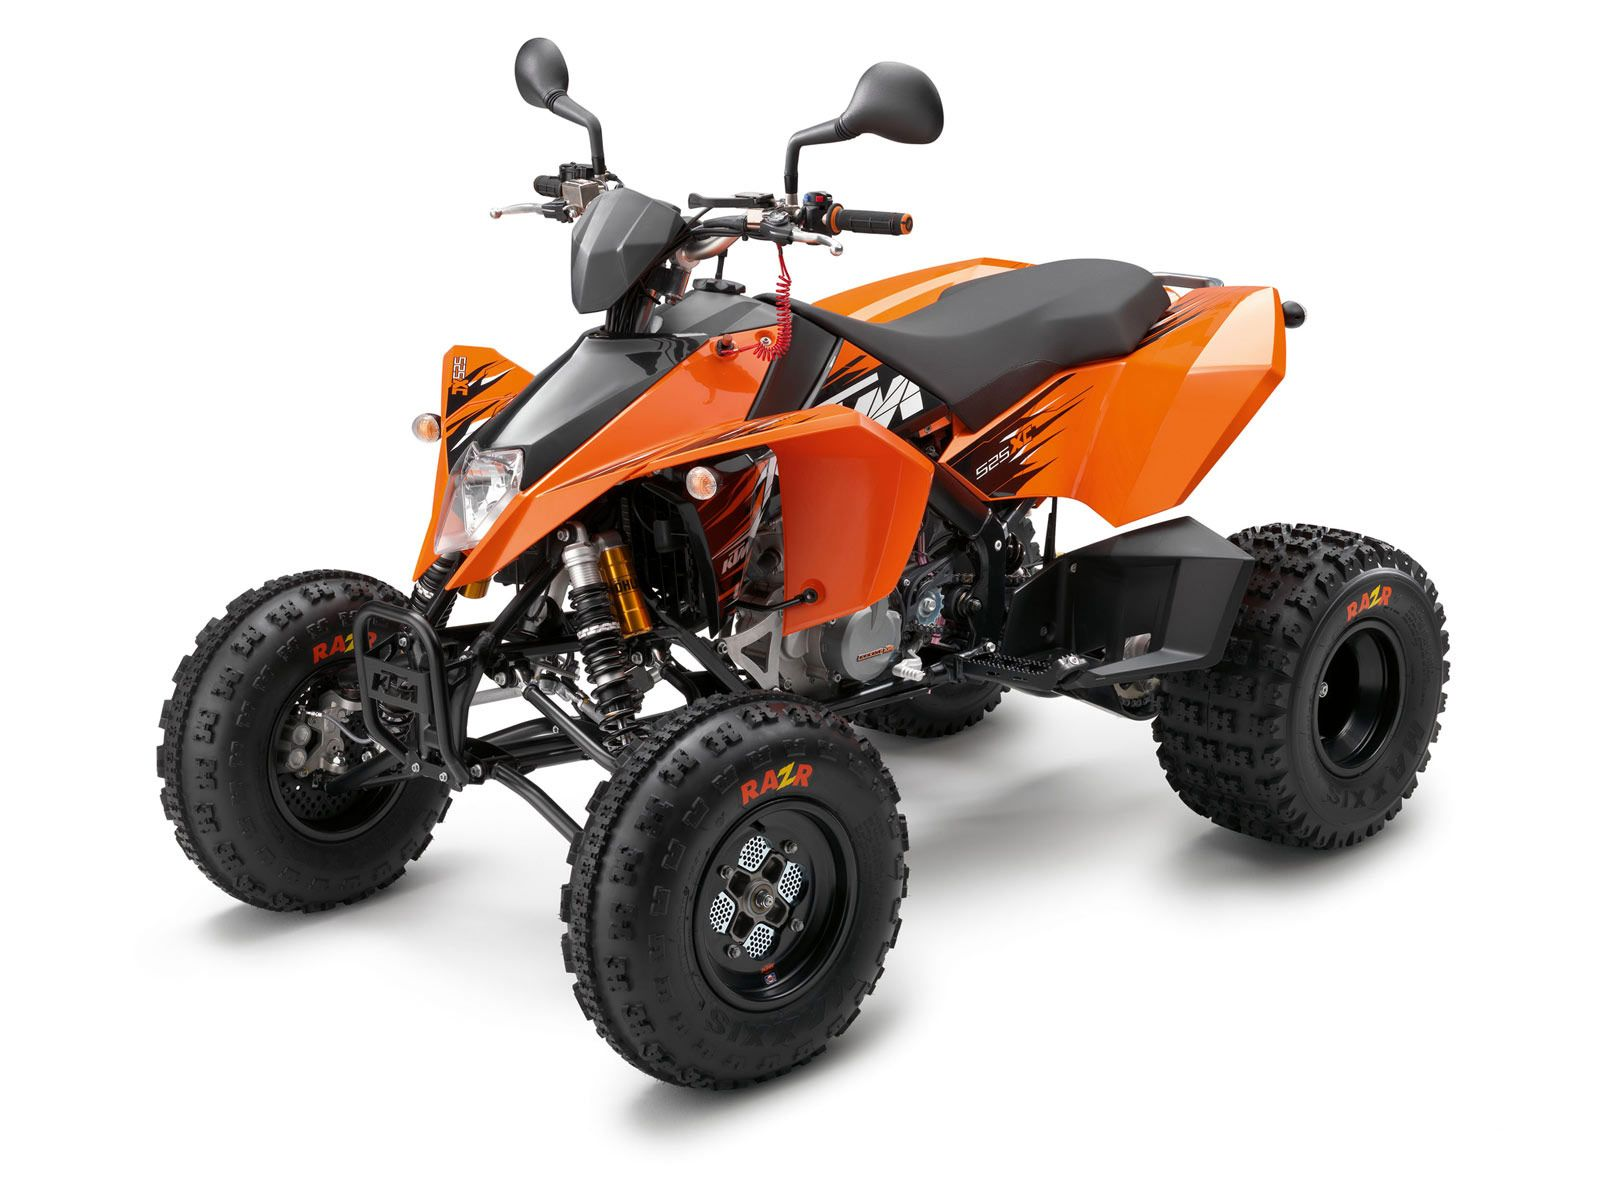 specifications and KTM 525 XC wallpapers